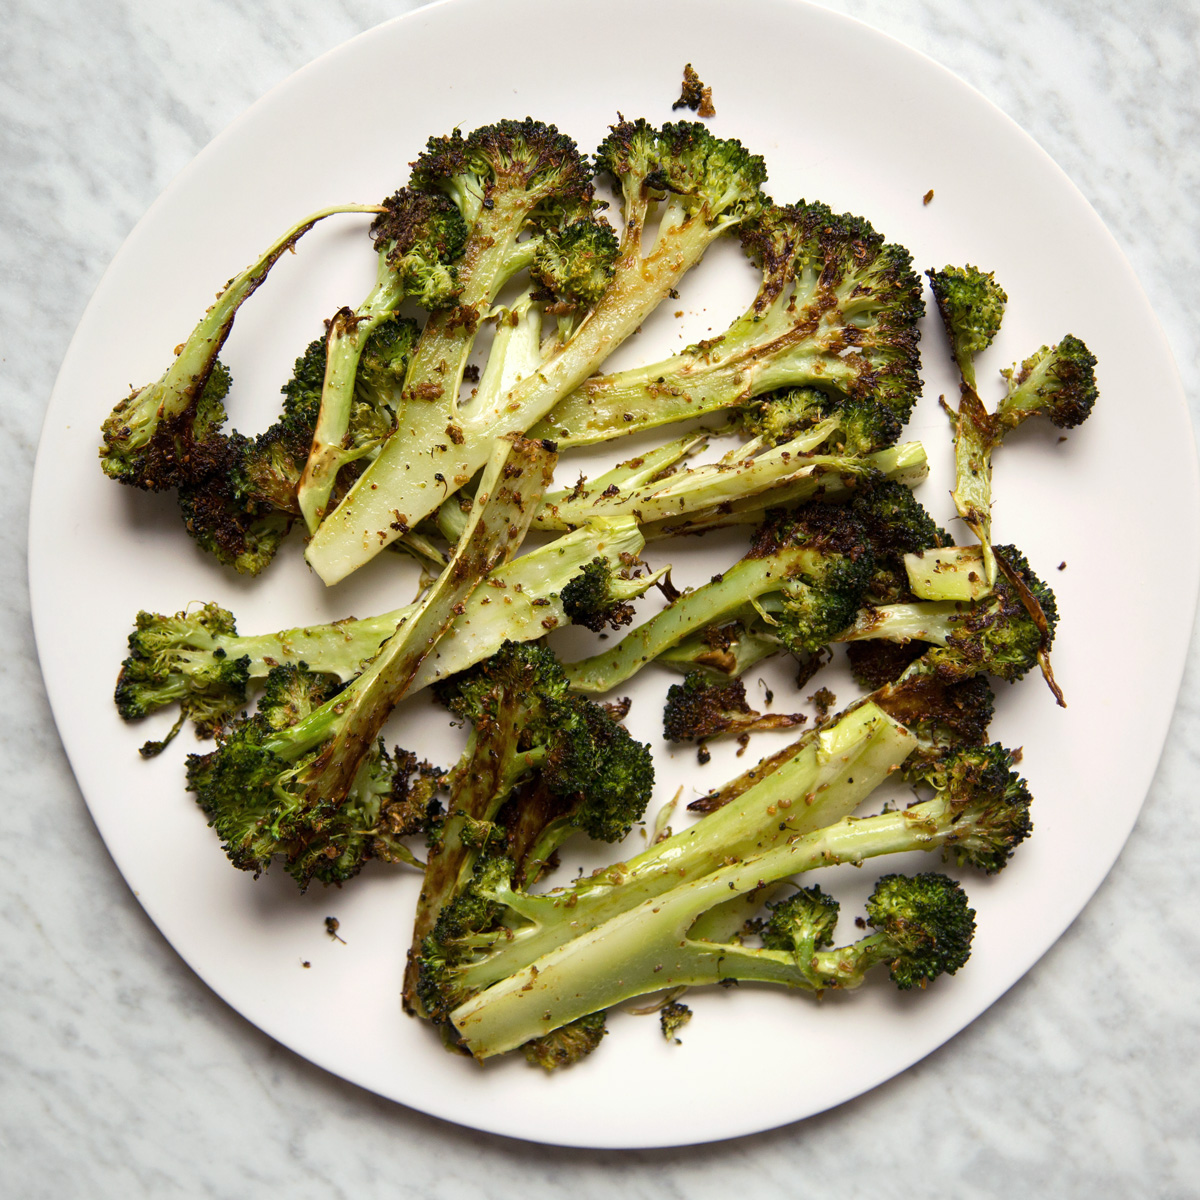 Coriander-Roasted Broccoli